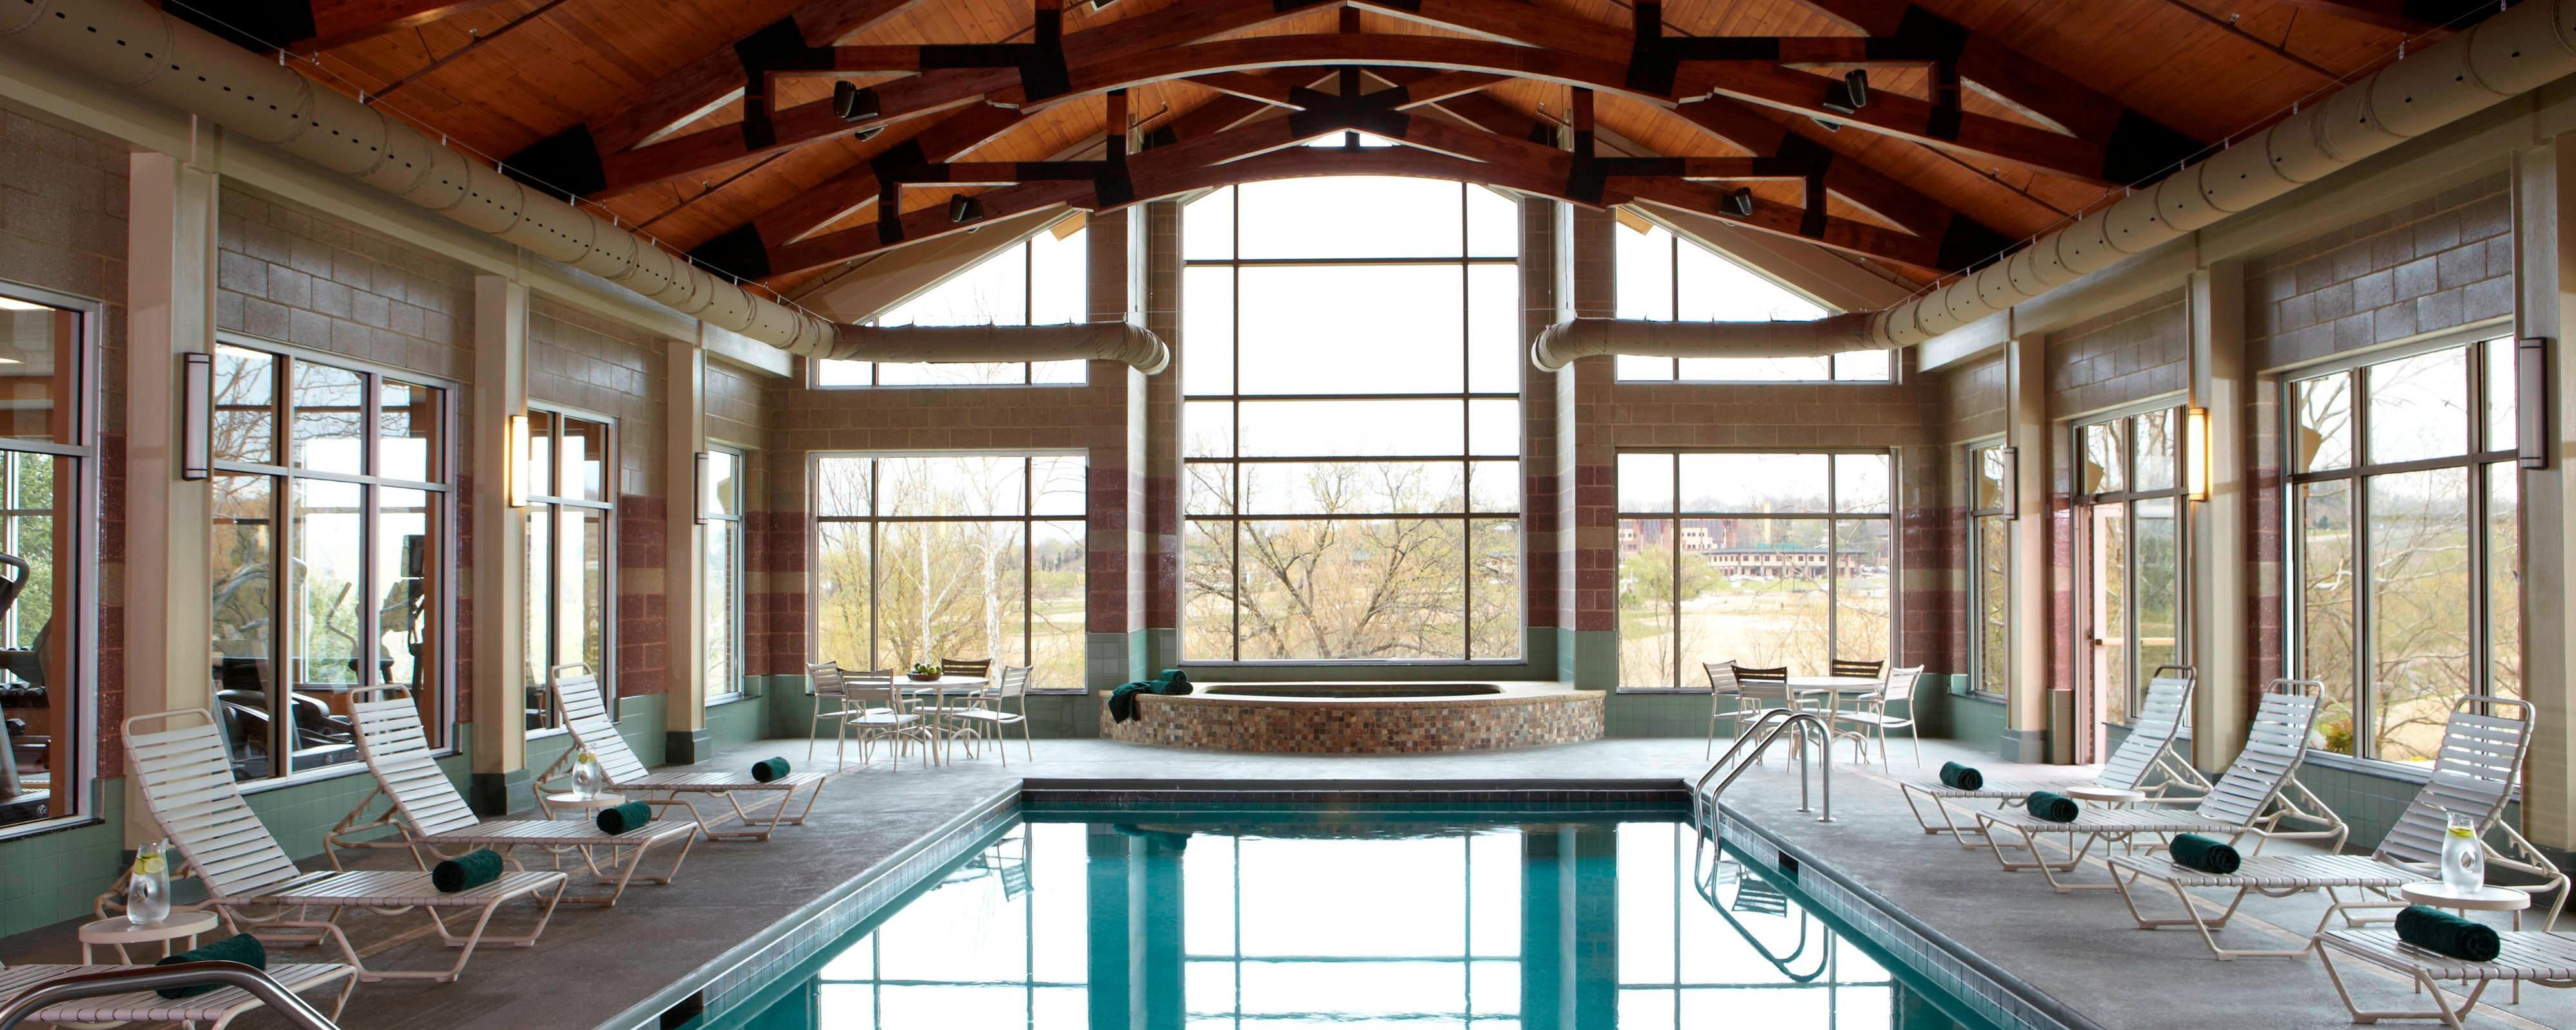 MeadowView Marriott Indoor Pool